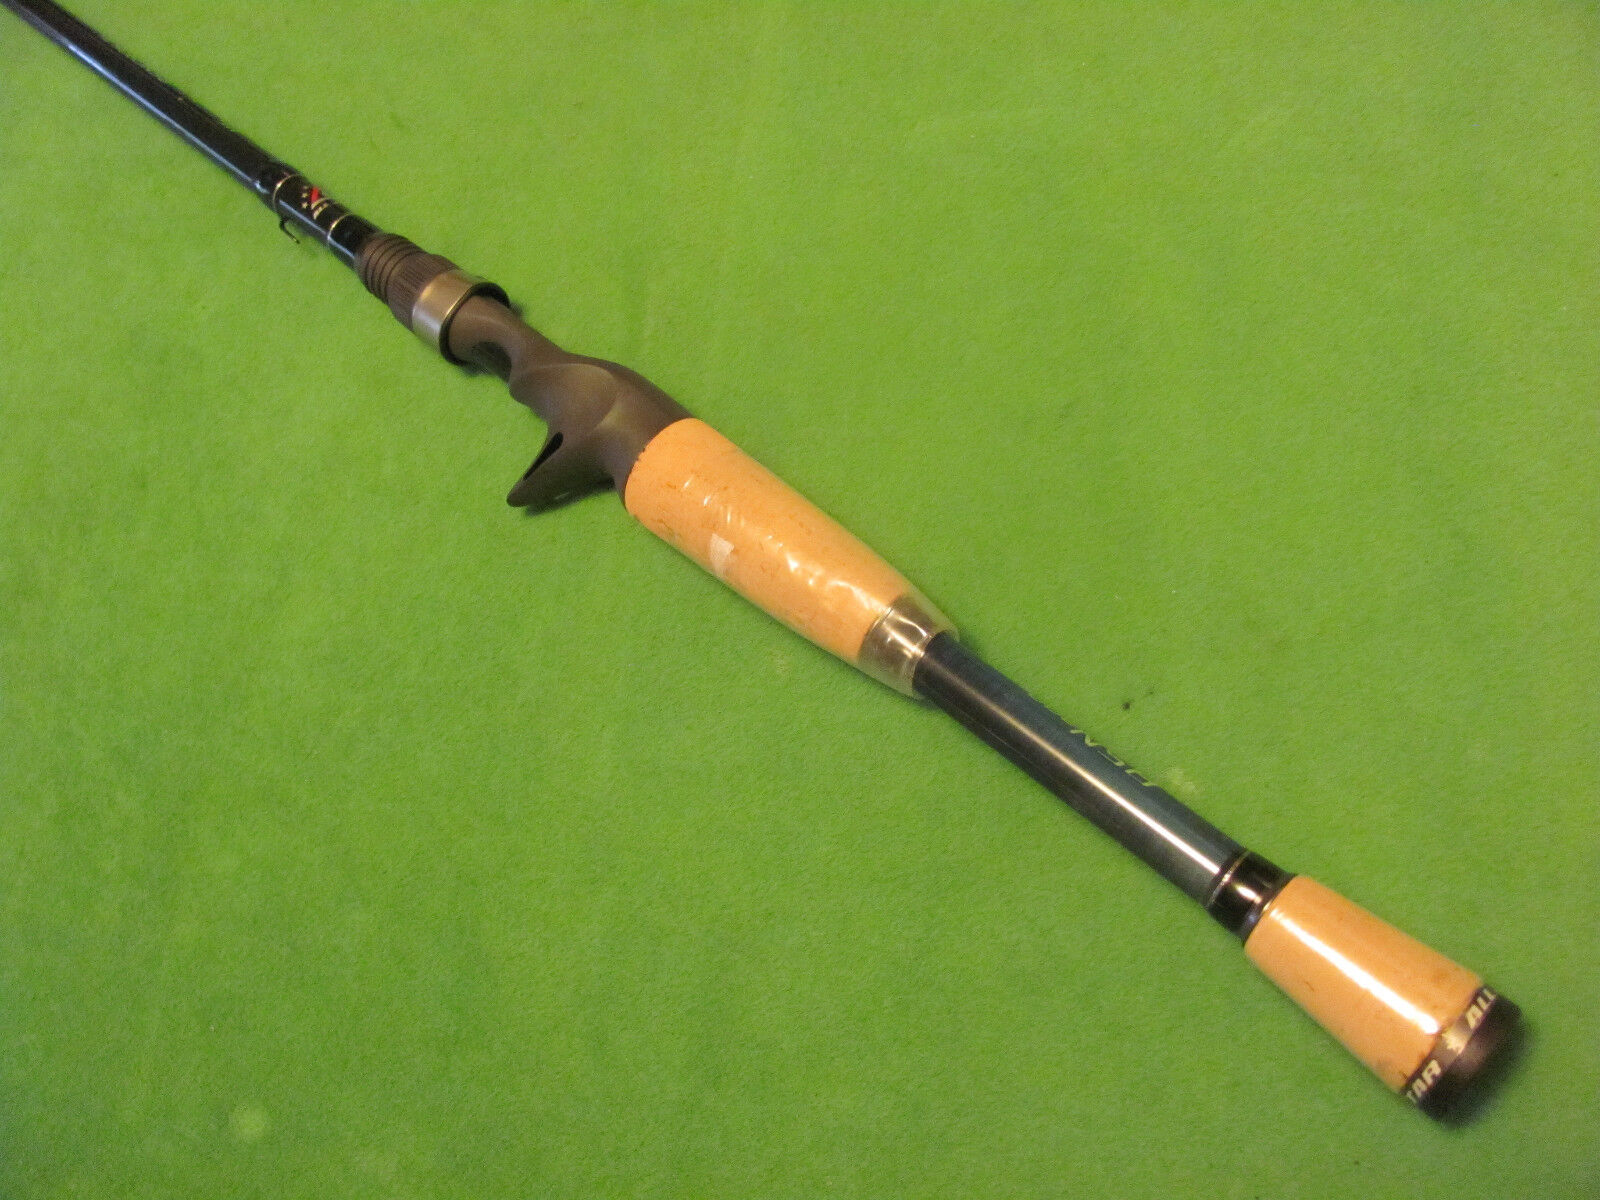 ALL STAR JIG 6' 8  MEDIUM HEAVY EXTRA FAST ACTION CASTING ROD NEW